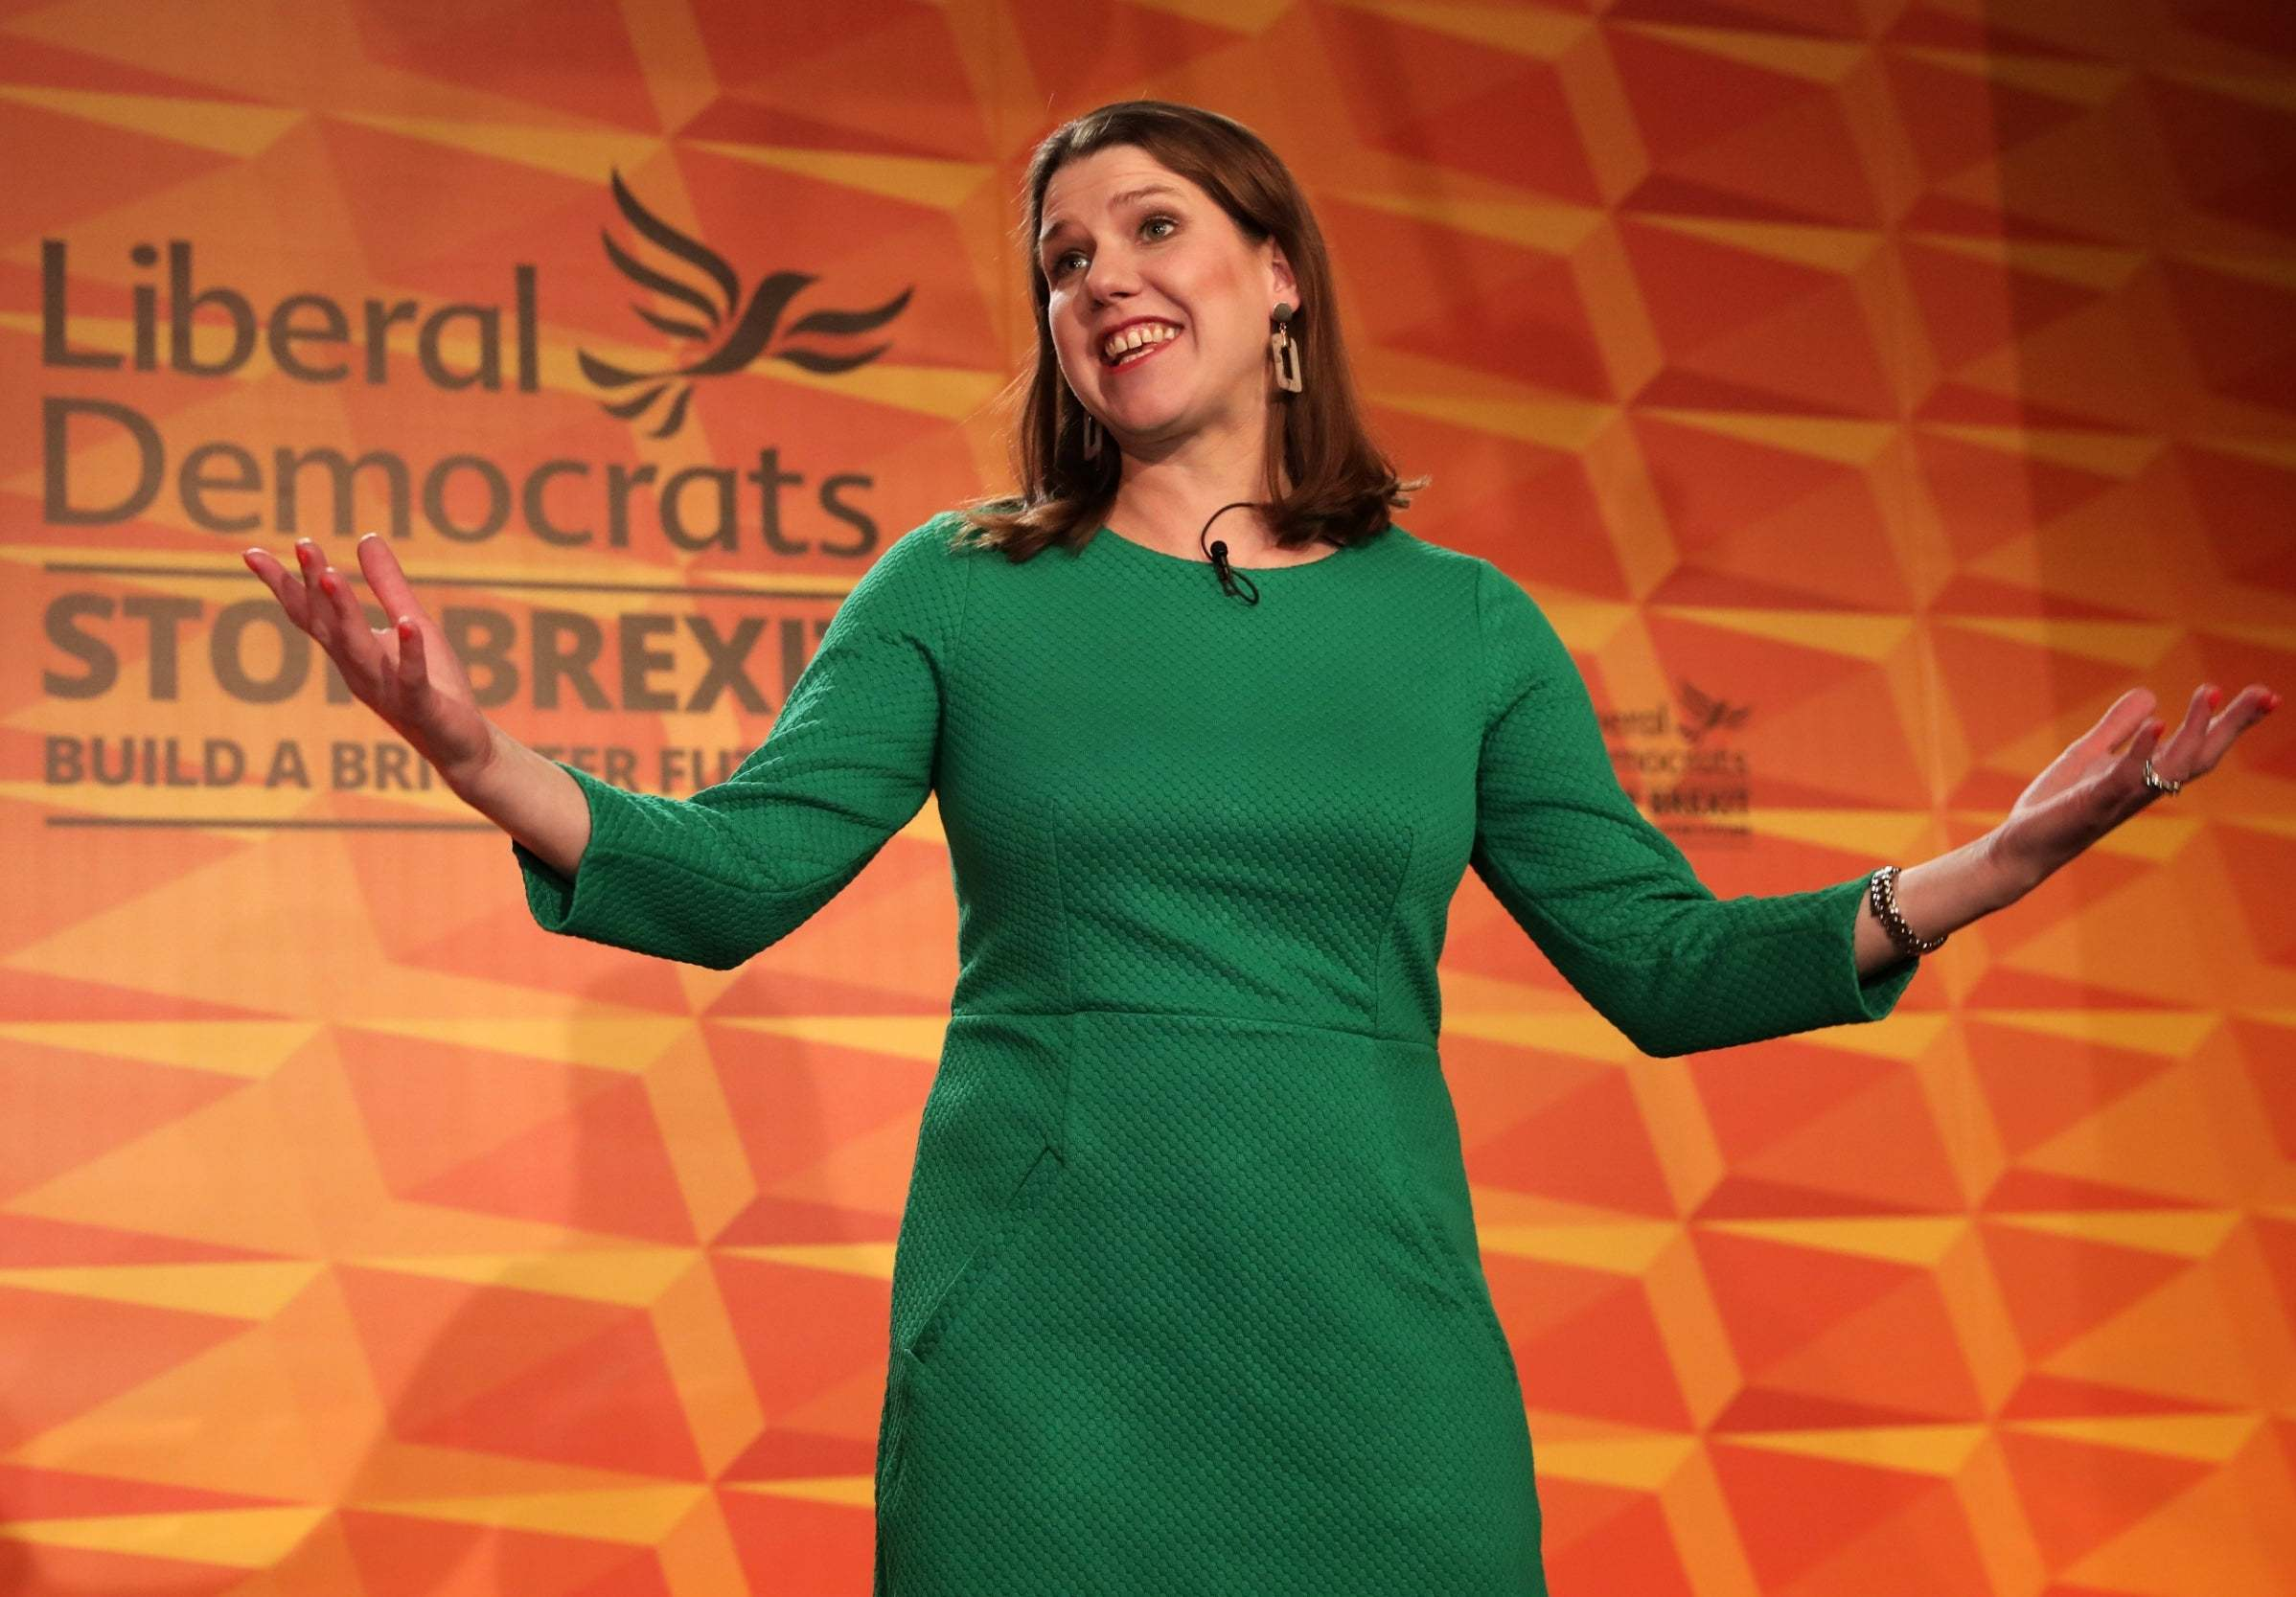 LibDems announce they will have a new leader in place by July